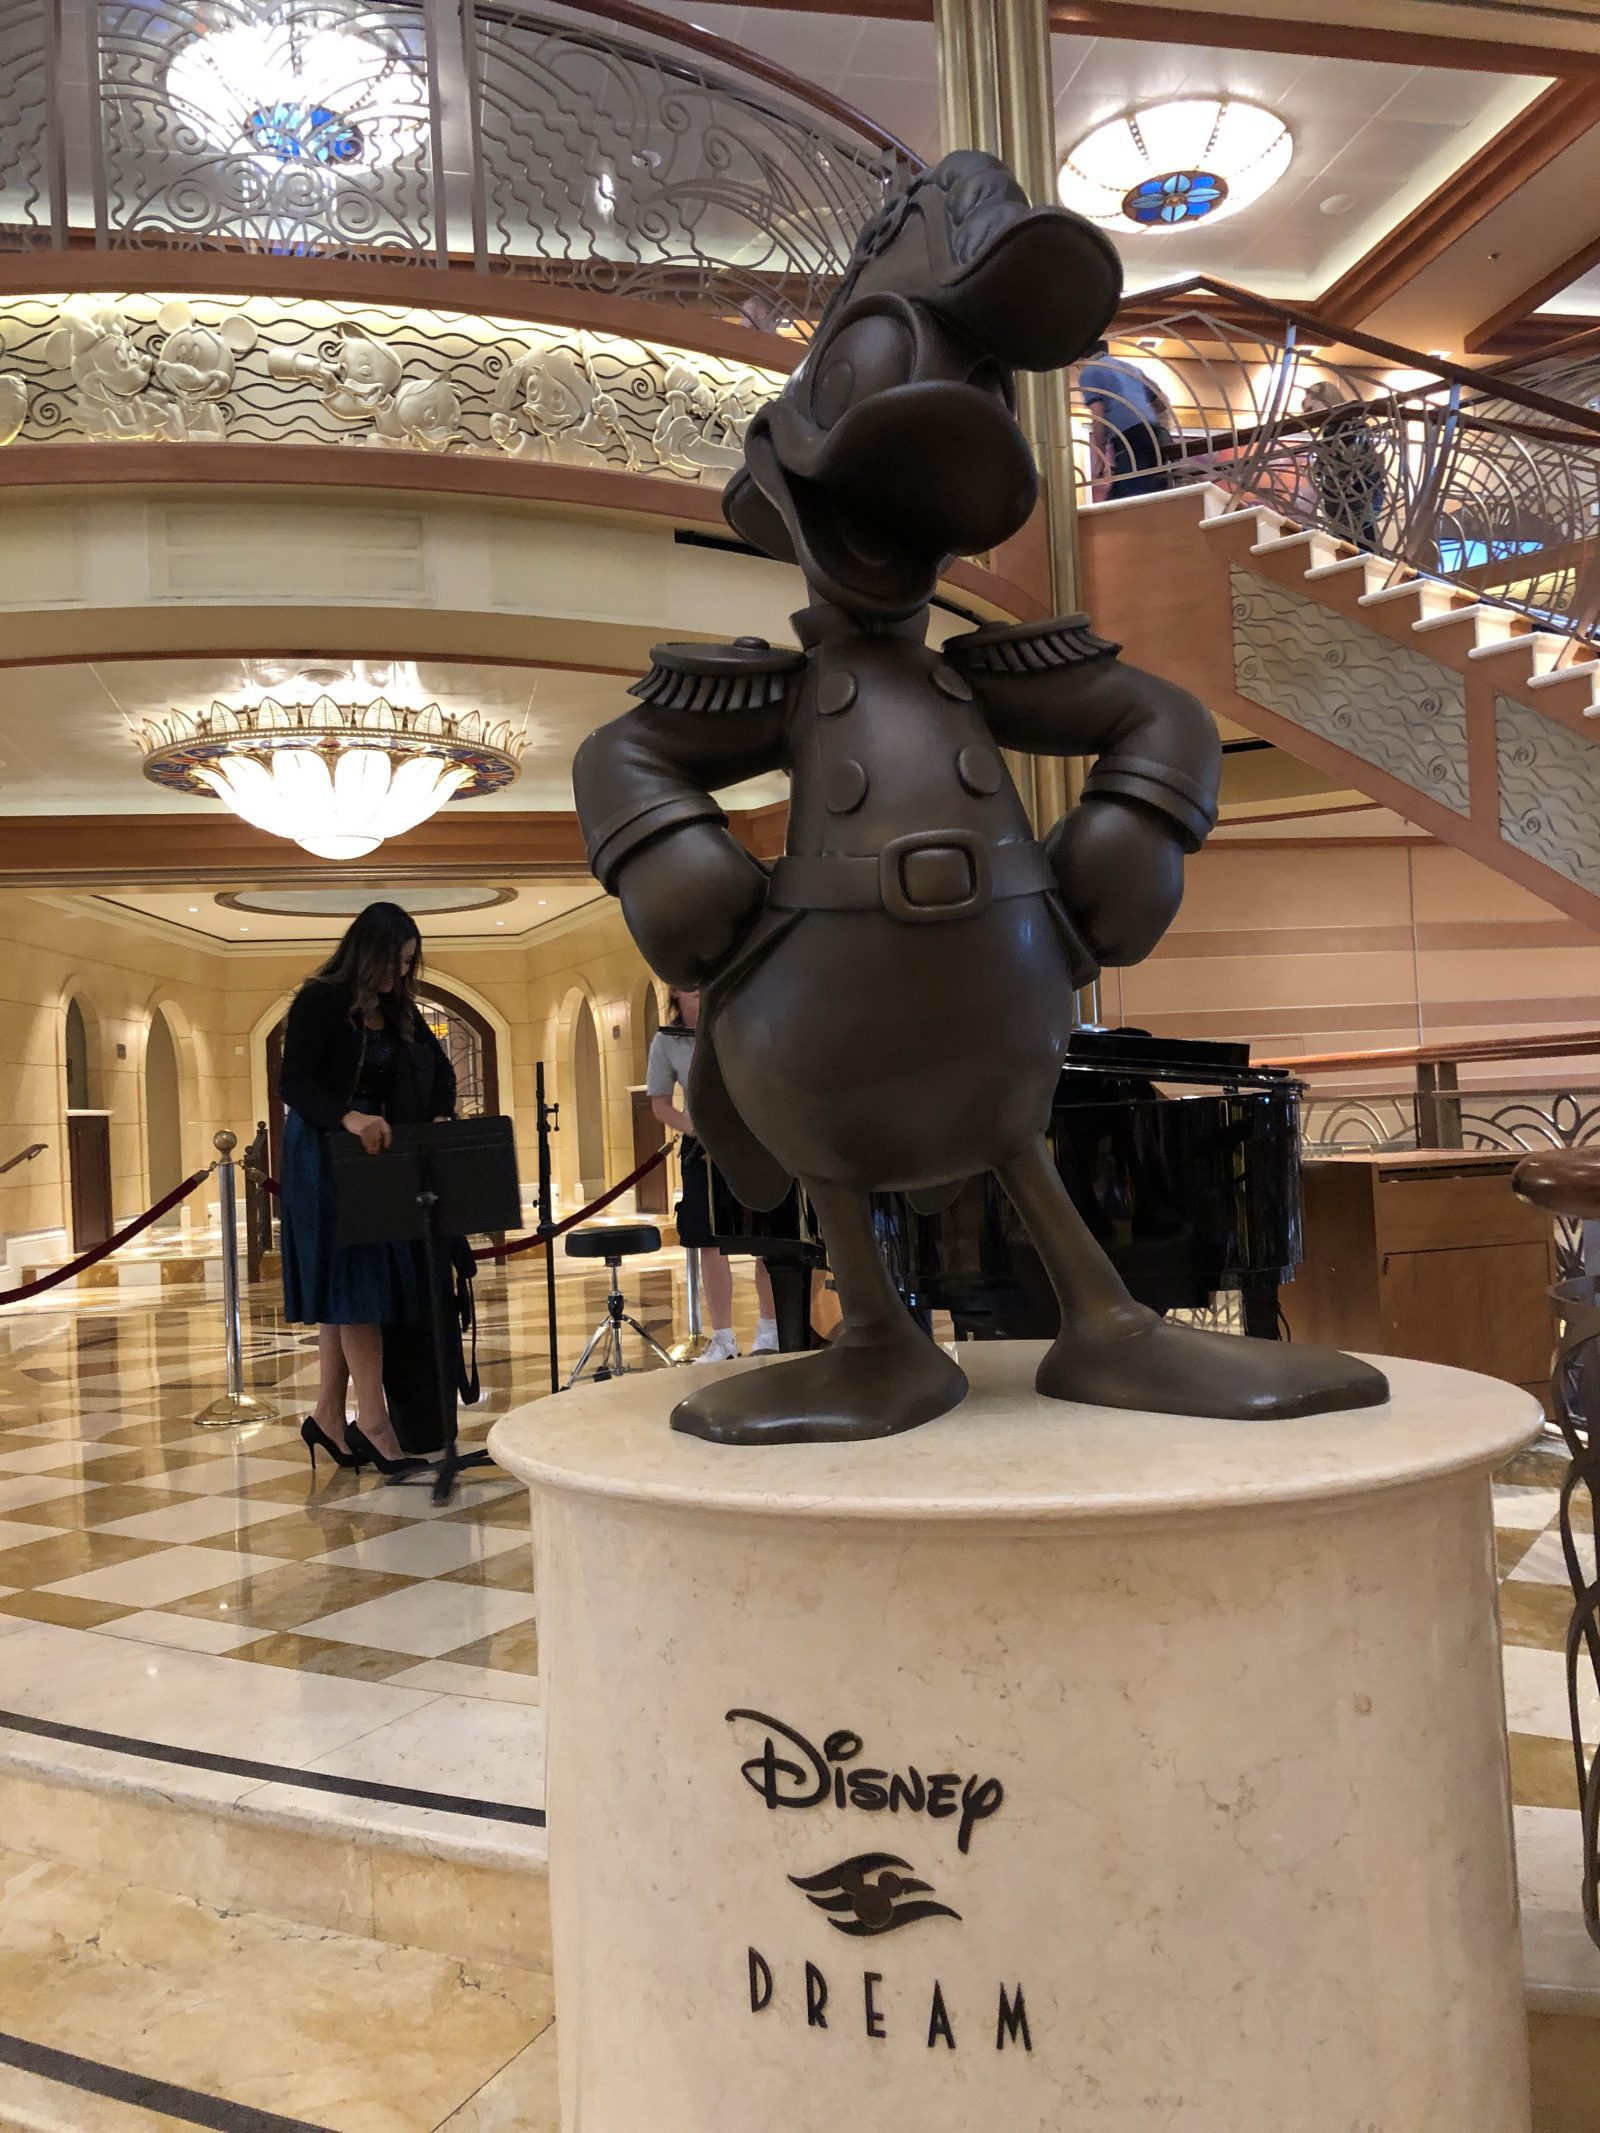 Disney Dream Cruise Ship - Disney Dream Cruise Photos - DisneySMMC Disney Social Media Moms Celebration 2018 via Misty Nelson #disneysmmc #disneymoms